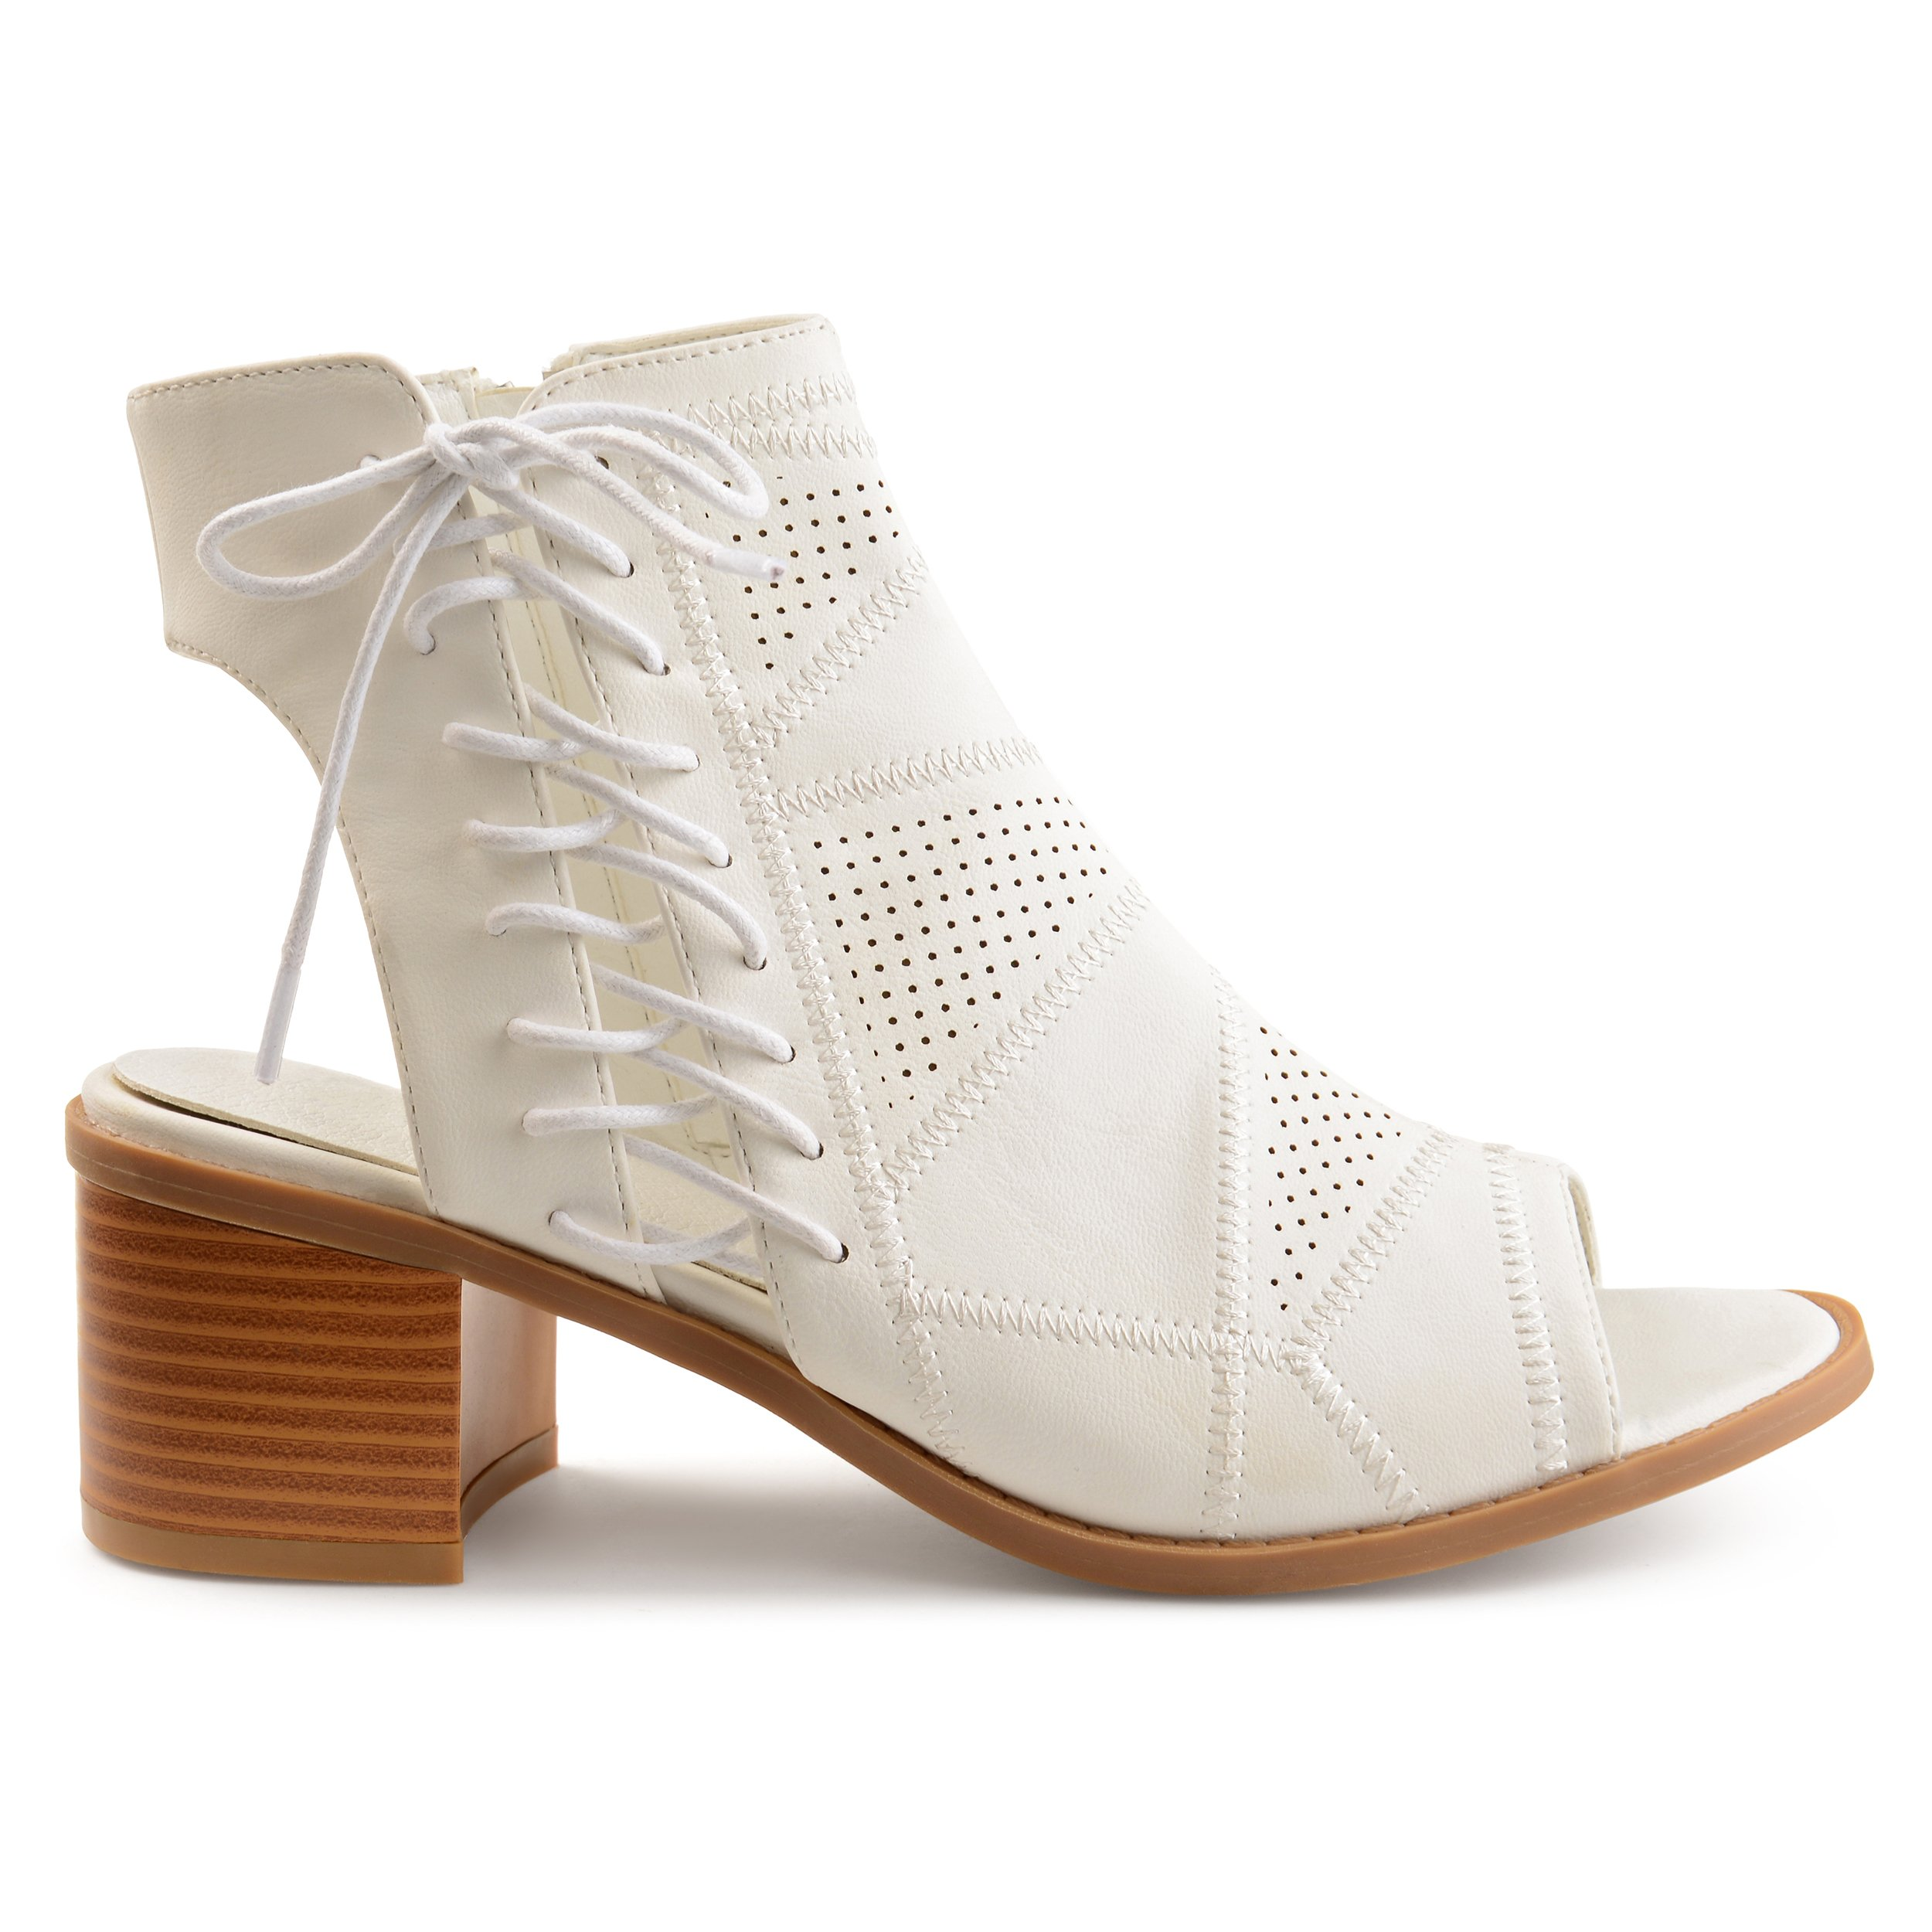 Brinley Co Womens Elva Faux Leather Side Lace-up Perforated Cut-Out Heel Booties White, 8.5 Regular US